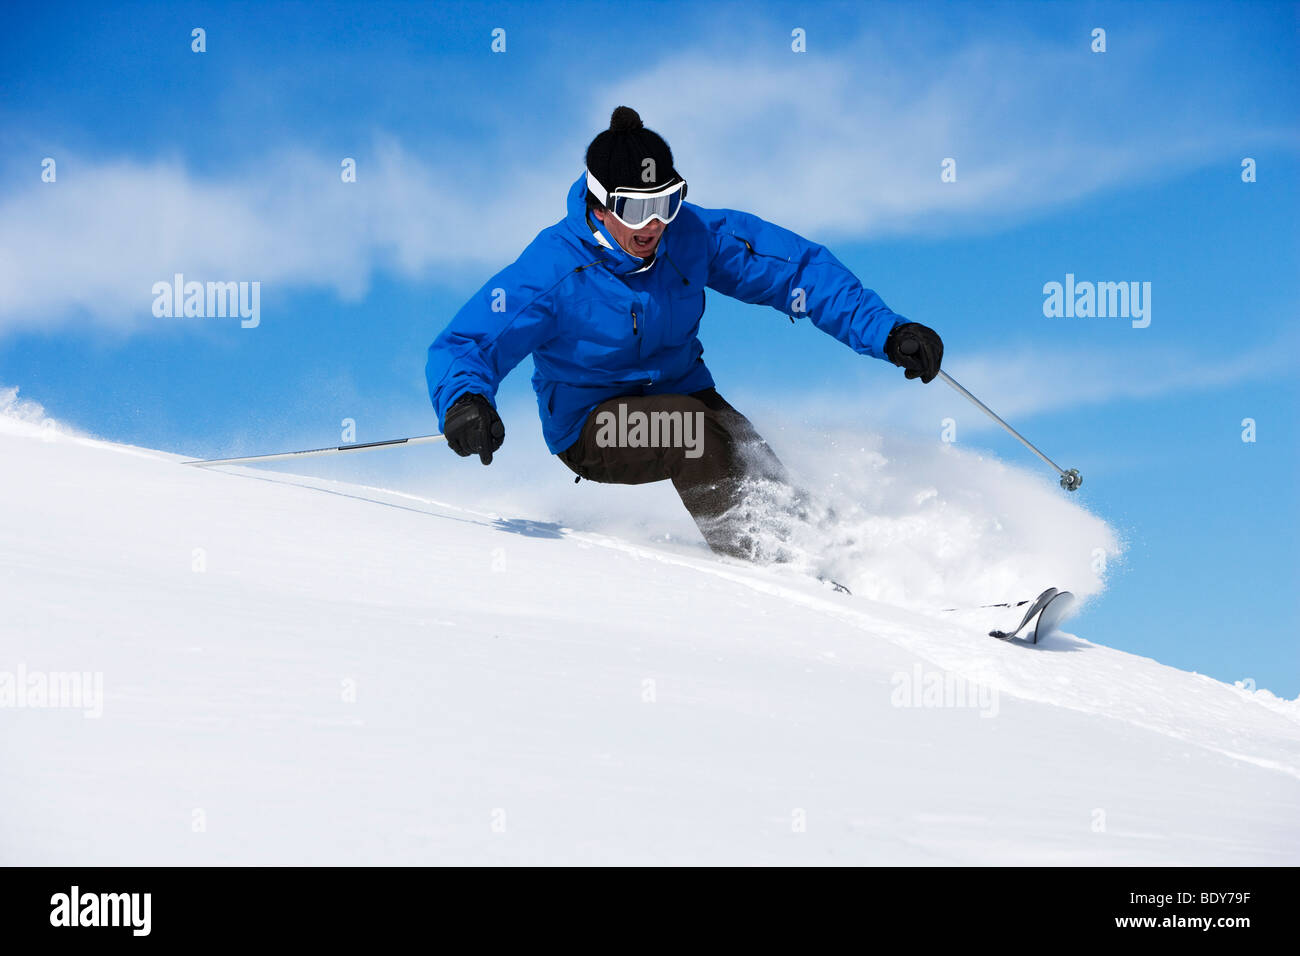 Man in blue & black outfit turning. - Stock Image